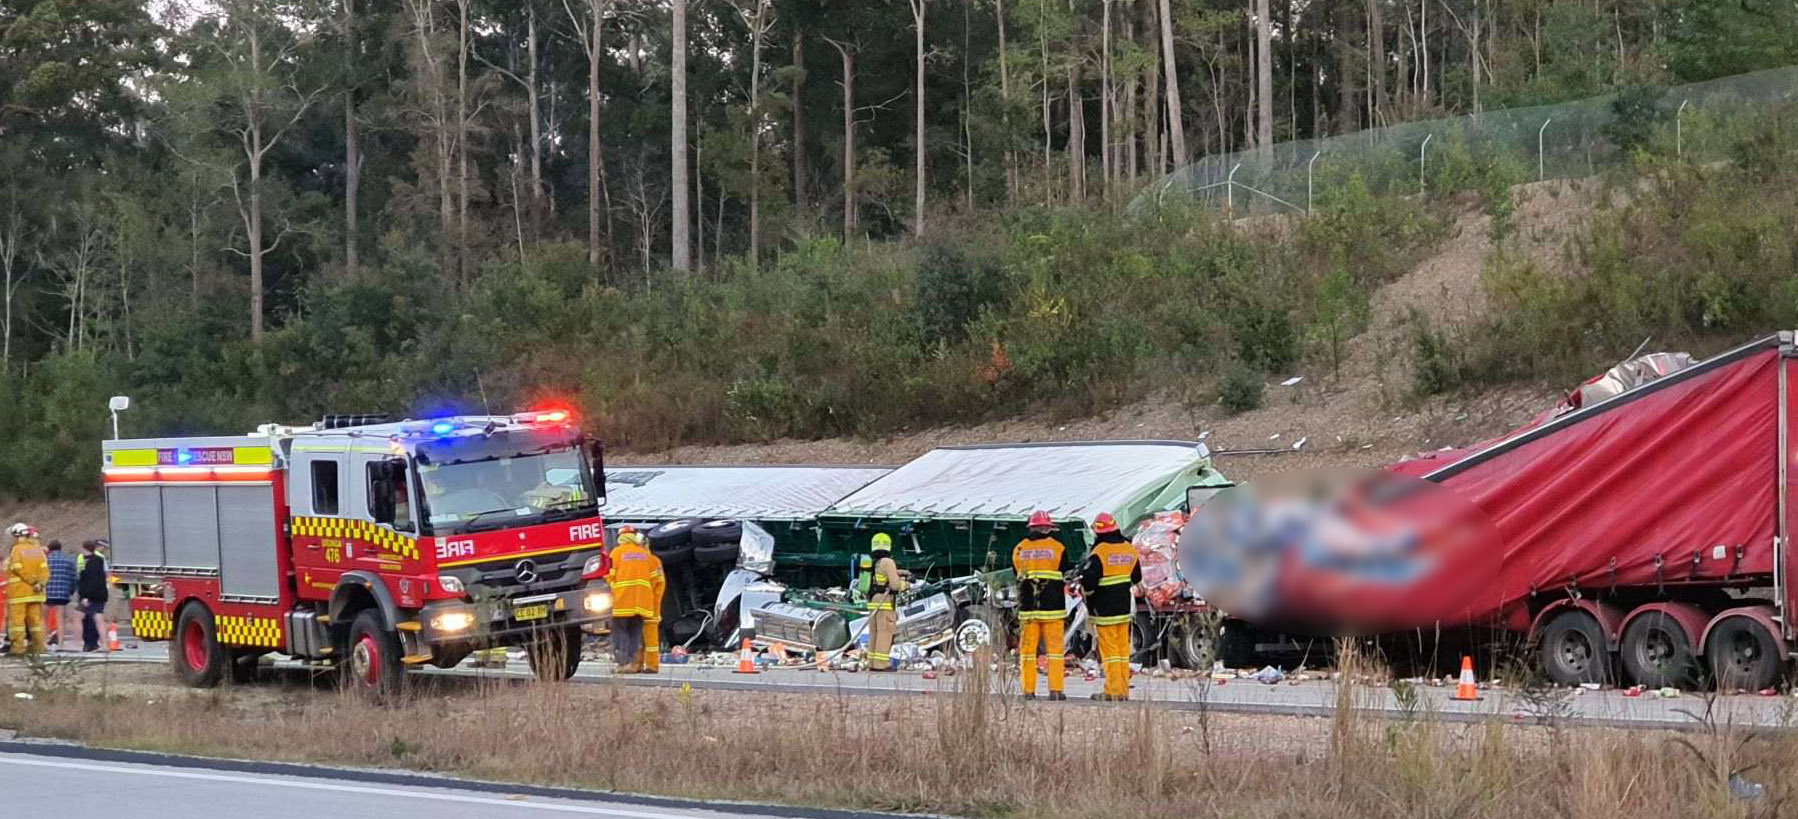 A driver has died in a crash on the Pacific Highway involving two trucks near Nambucca Heads.